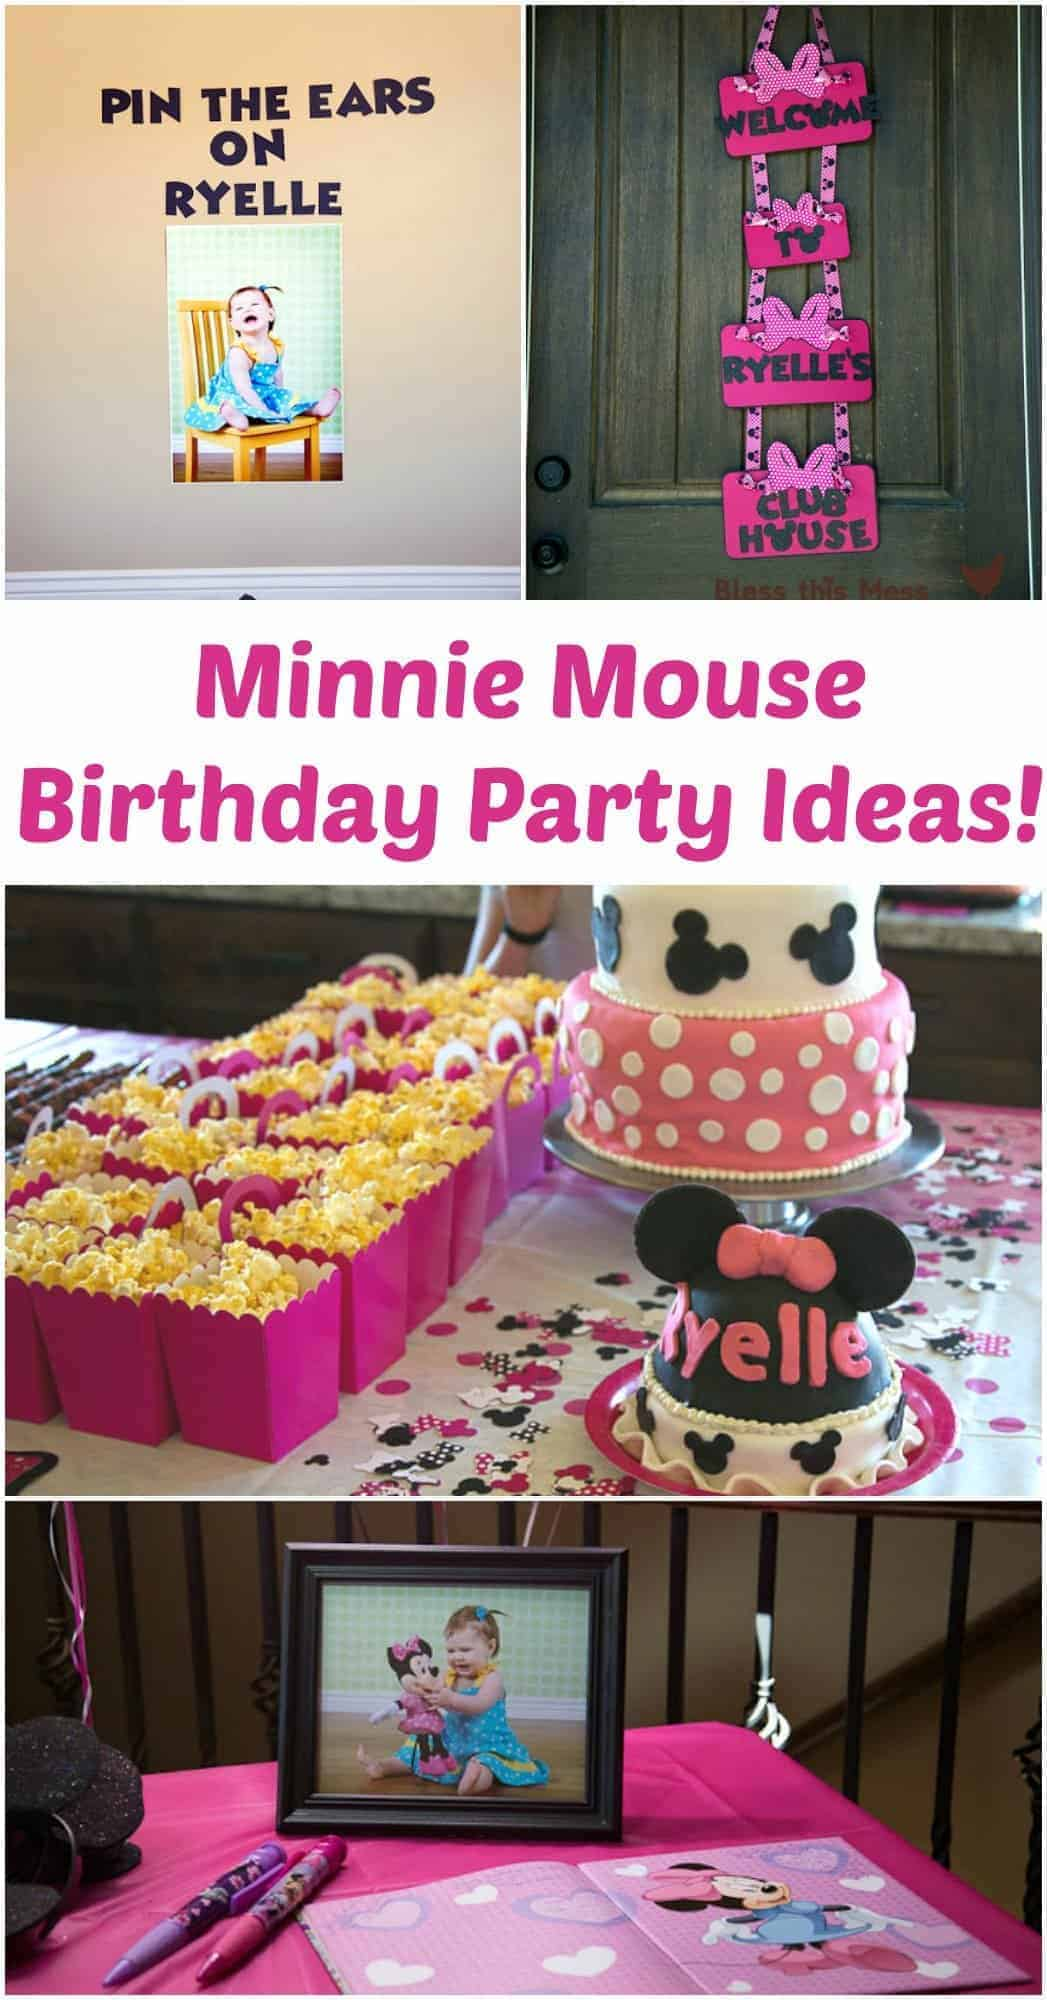 Need ideas for a super cute DIY Minnie Mouse Birthday Party? This is just the place to be inspired!